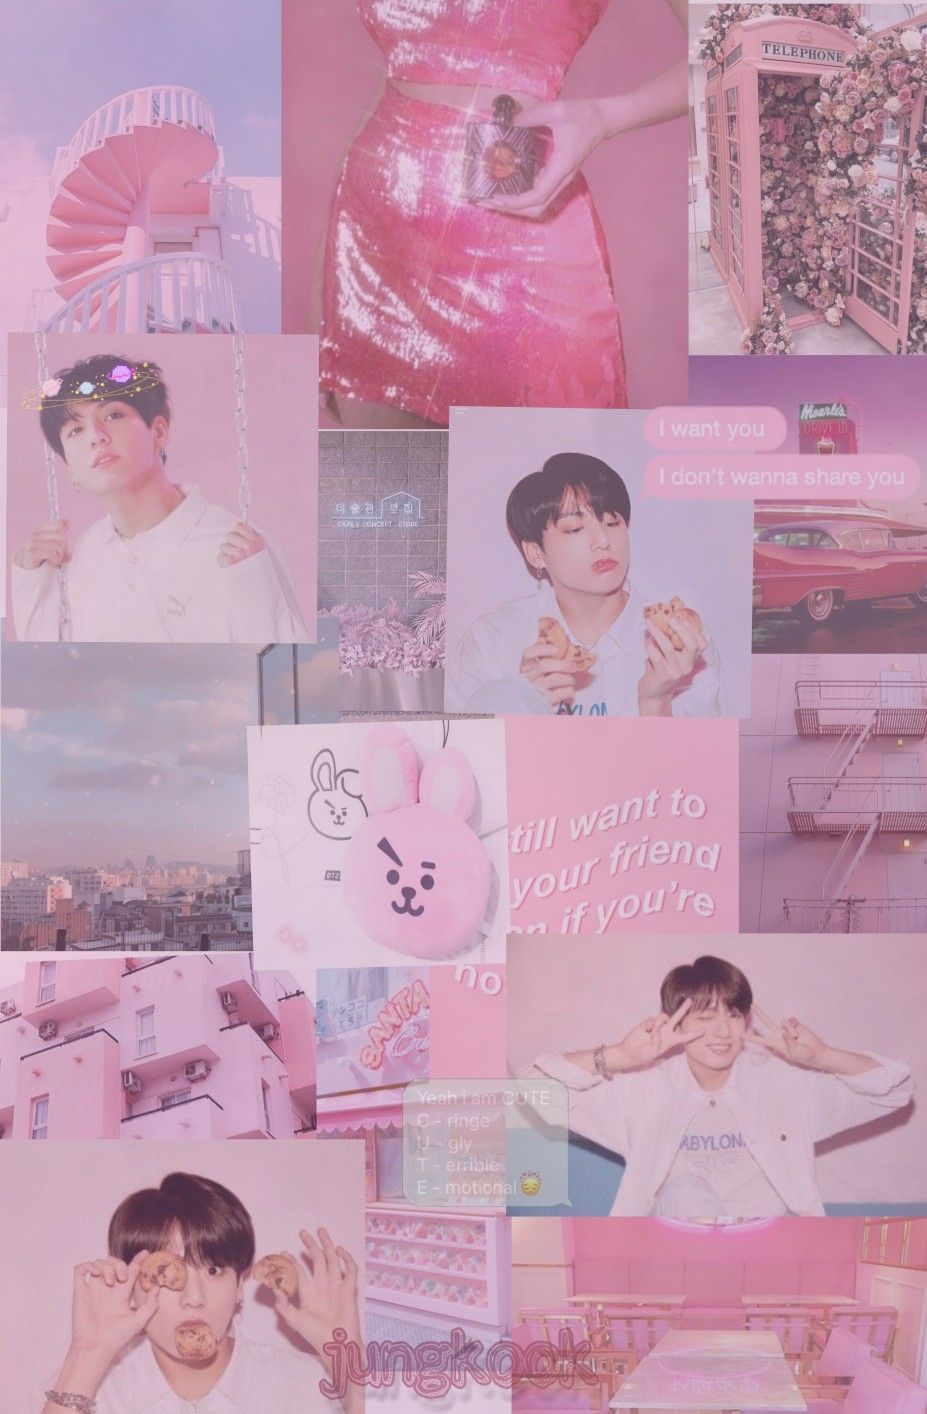 Bts Aesthetic Wallpaper For Mobile Phone Tablet Desktop Computer And Other Devices Hd And In 2021 Bts Laptop Wallpaper Bts Aesthetic Wallpaper For Phone Bts Jungkook Bts wallpaper 2021 pink